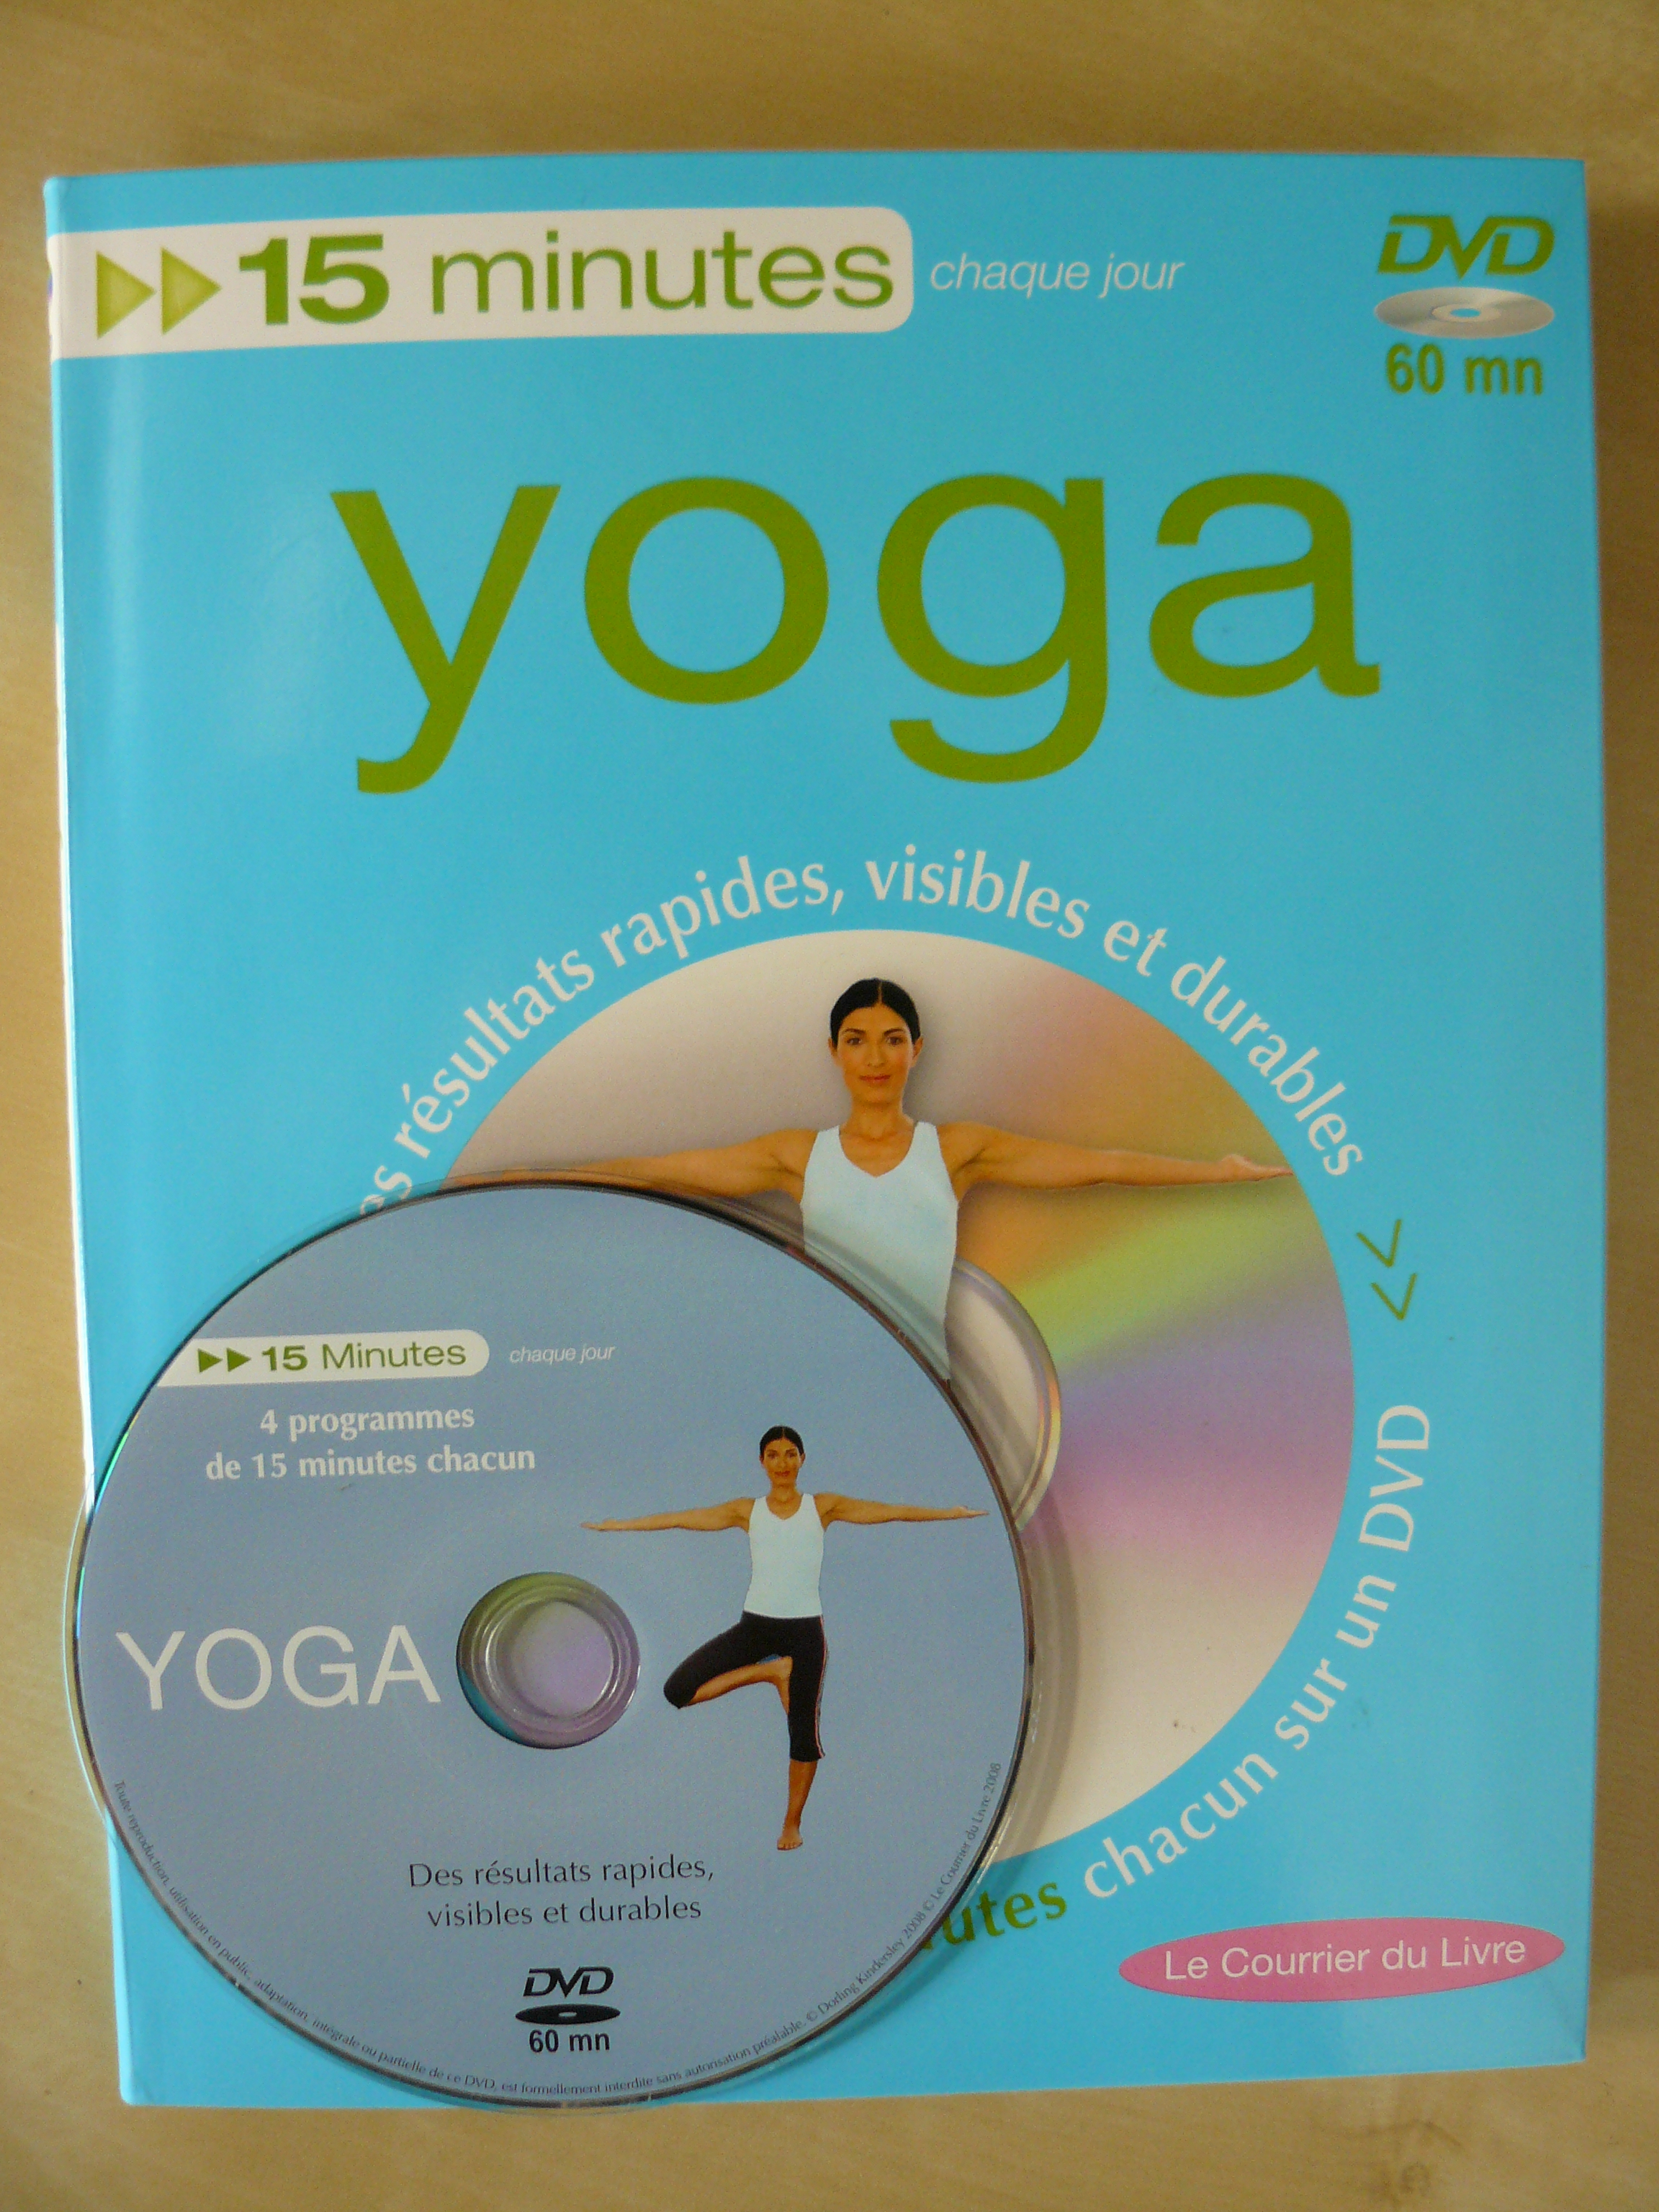 pratiquer le yoga chez soi en 15 min livre et dvd guillaume ducrot yoga. Black Bedroom Furniture Sets. Home Design Ideas